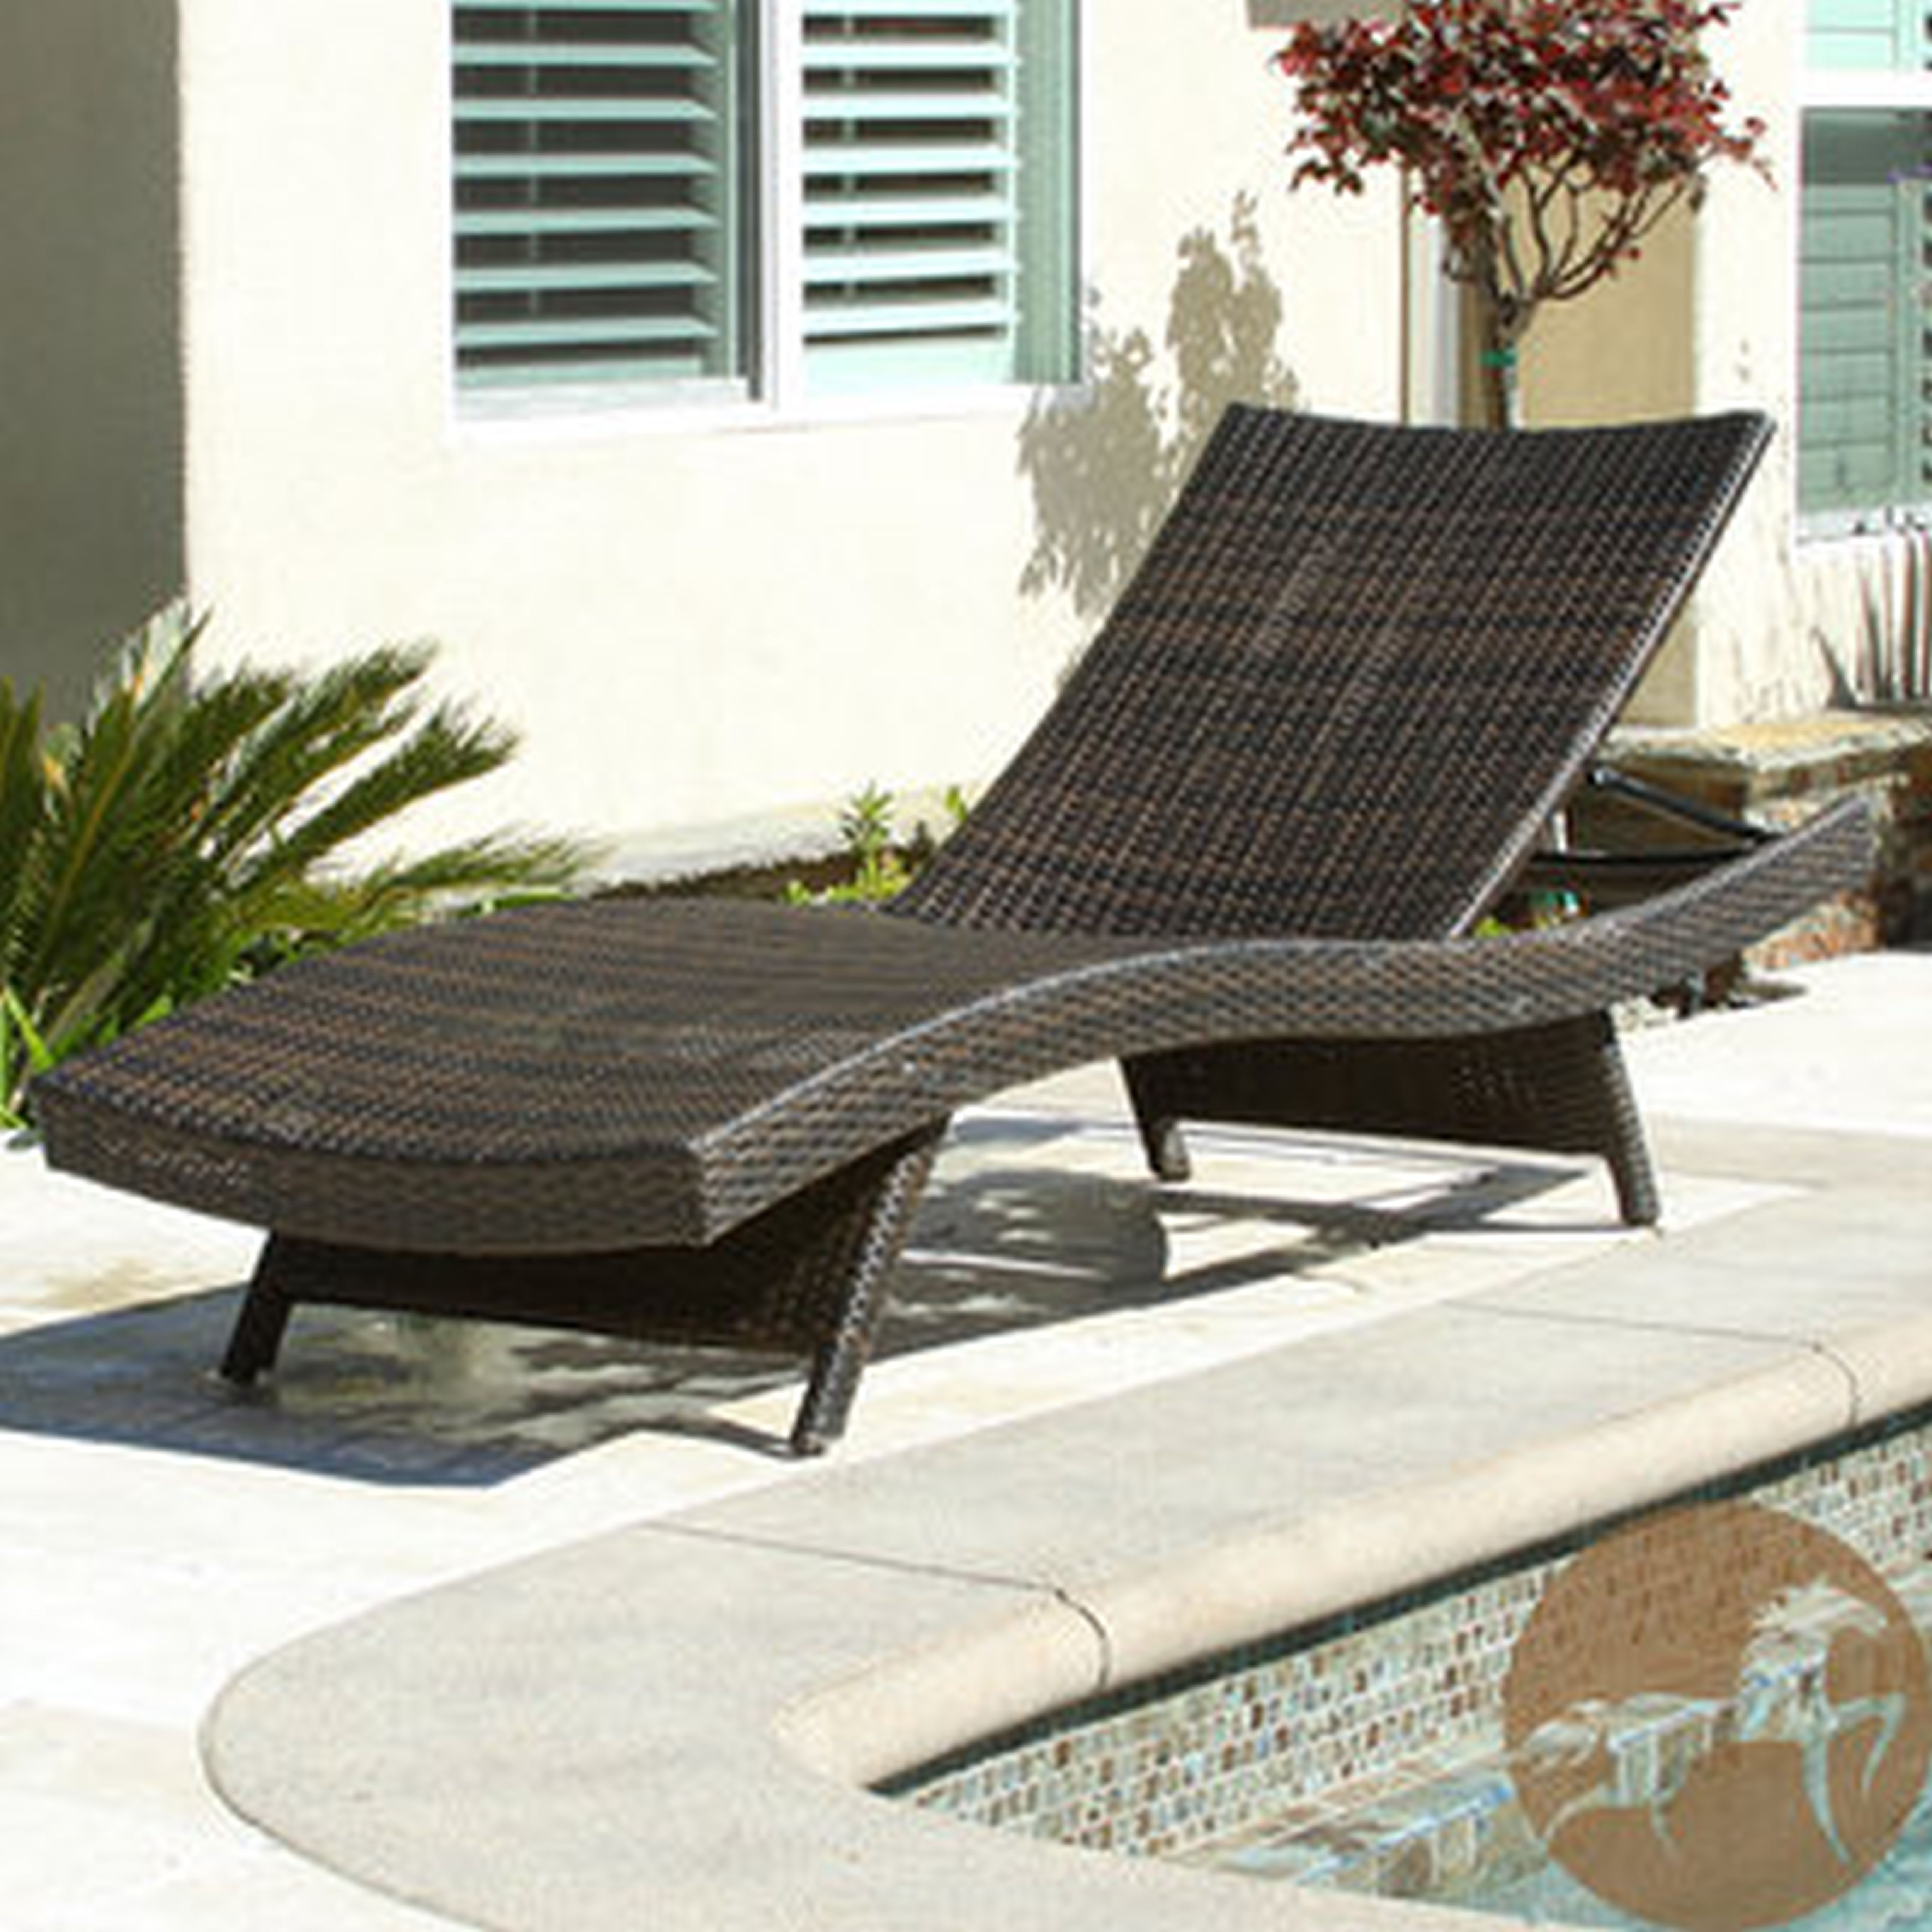 Chaise Lounge Chairs At Lowes Throughout Favorite Furniture: All Weather Wicker Patio Furniture Design With Lowes (View 5 of 15)